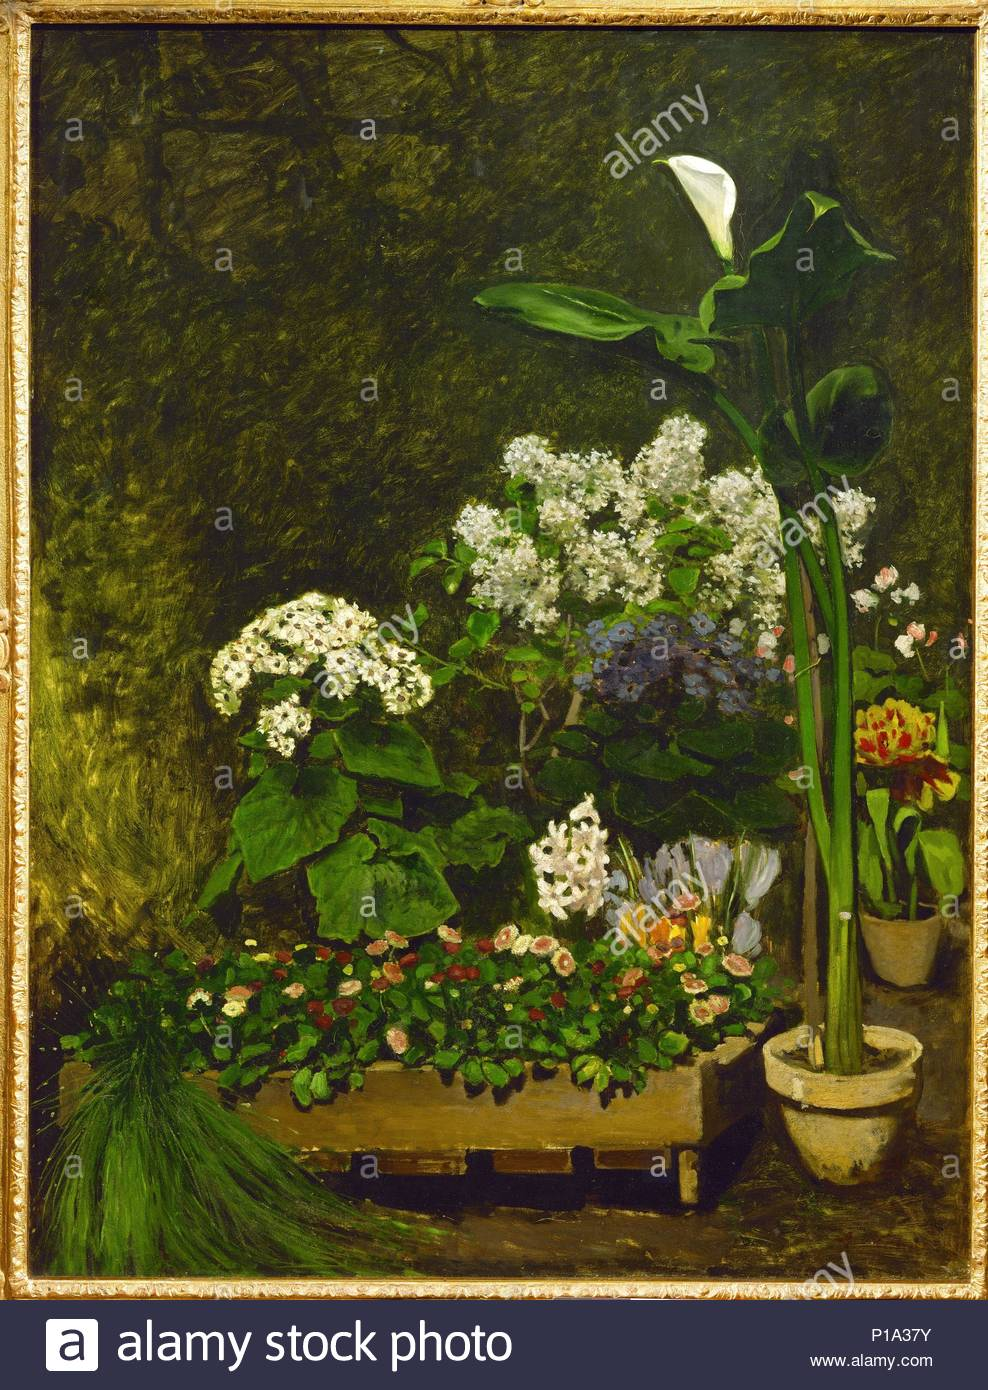 Nature morte, fleurs de printemps dans la serre-Still-life, spring flowers in a conservatory. Canvas, 130 x 98,4 cm Formerly in the collection of painter Max Liebermann. Author: Pierre Auguste Renoir (1841-1919). Location: Kunsthalle, Hamburg, Germany. - Stock Image